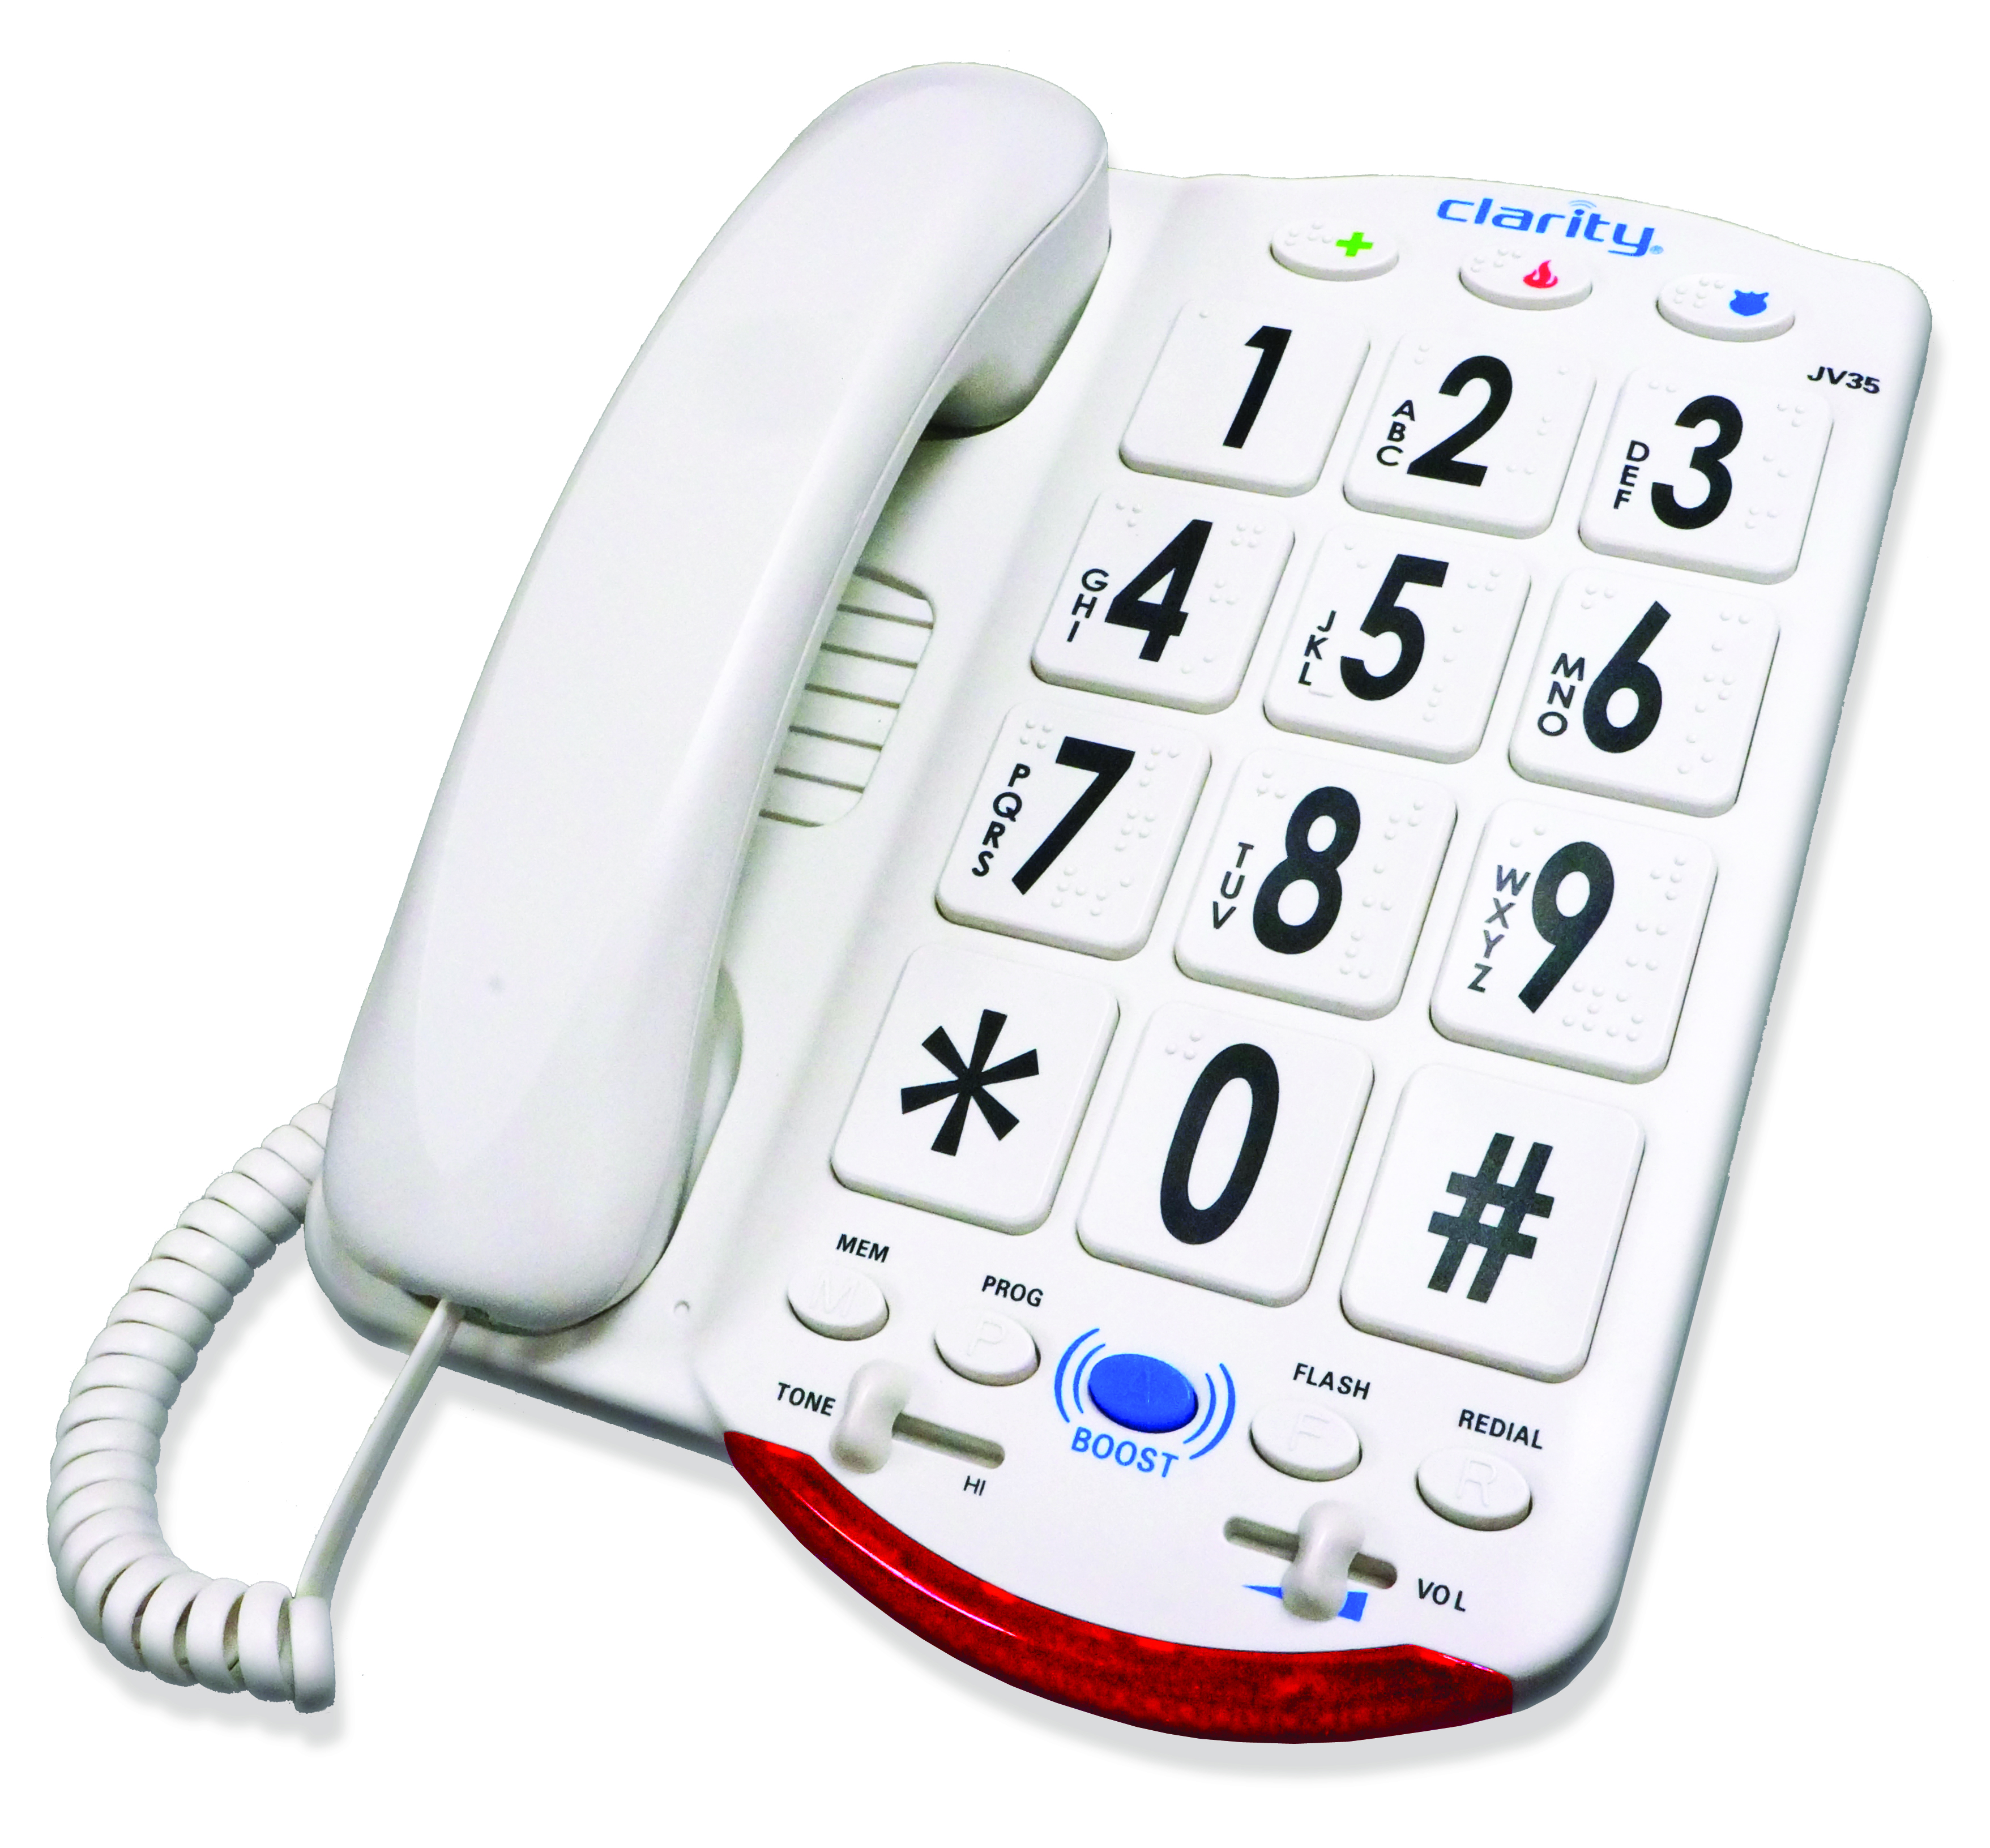 Image for Clarity Jv35W Amplified Telephone With Talk Back Numbers from Circuit City